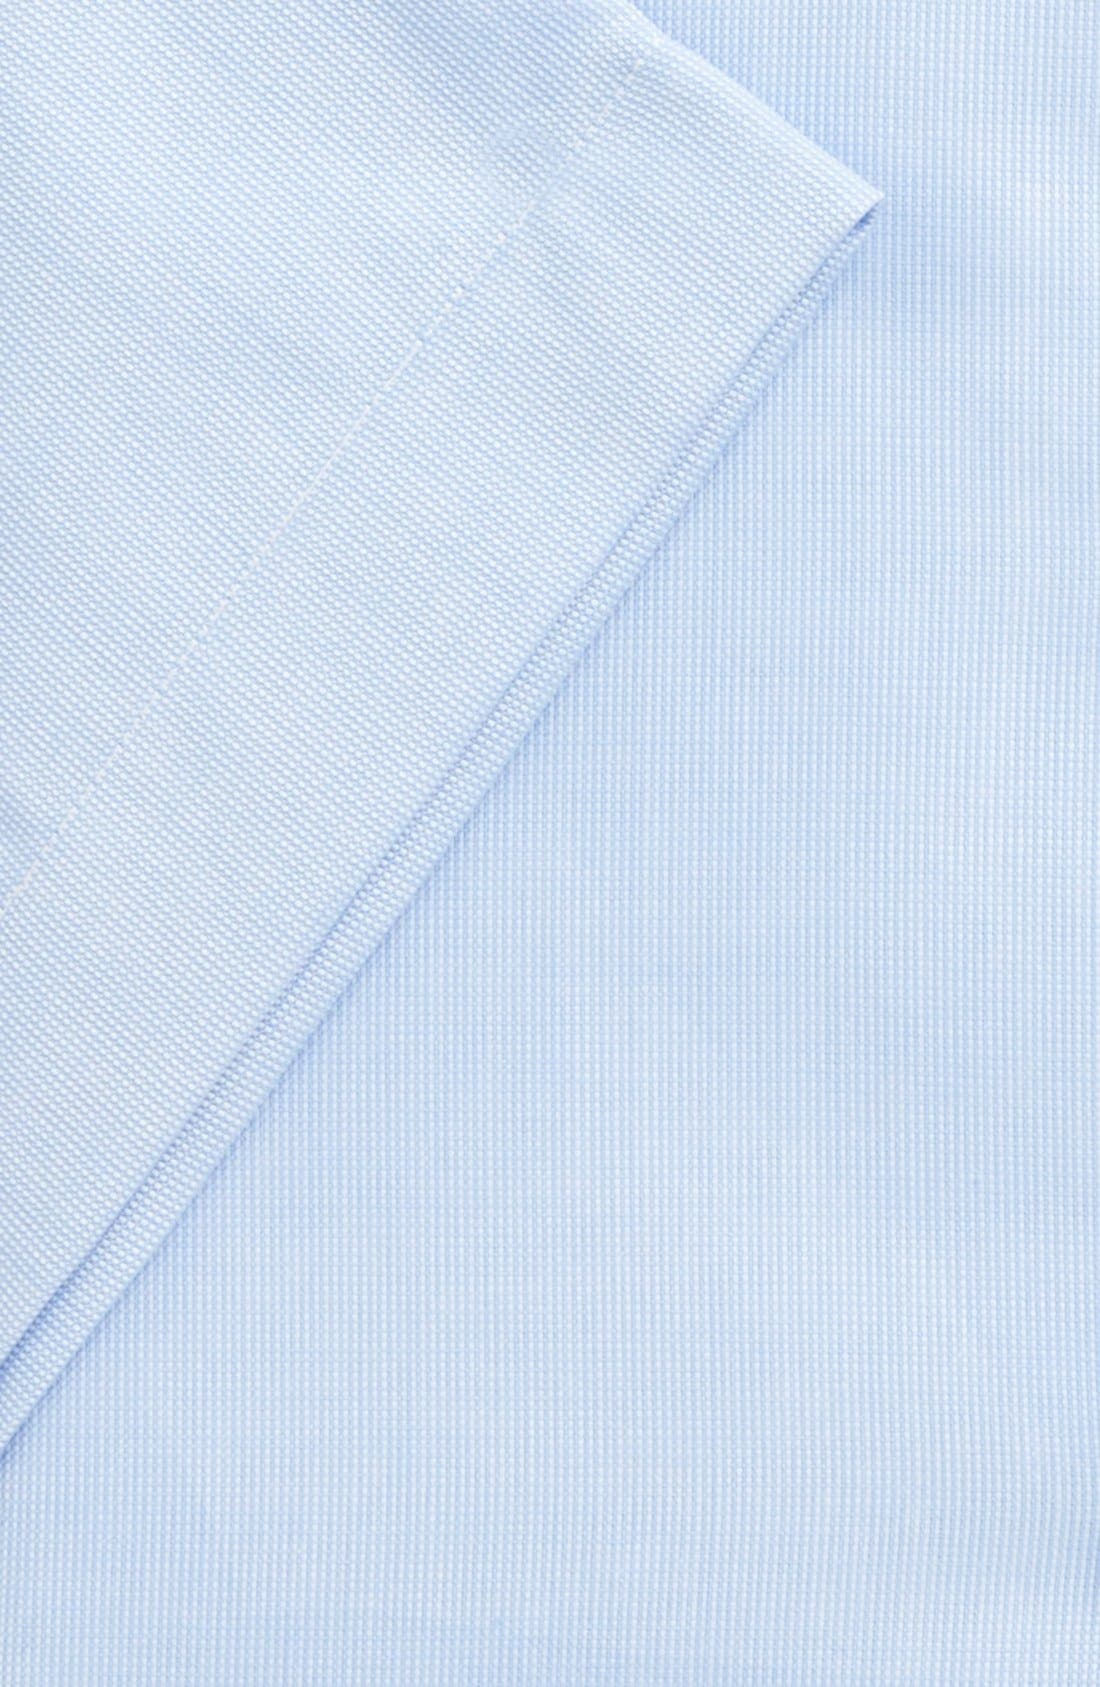 Alternate Image 4  - Nordstrom Men's Shop Traditional Fit Non-Iron Short Sleeve Dress Shirt (Online Only)